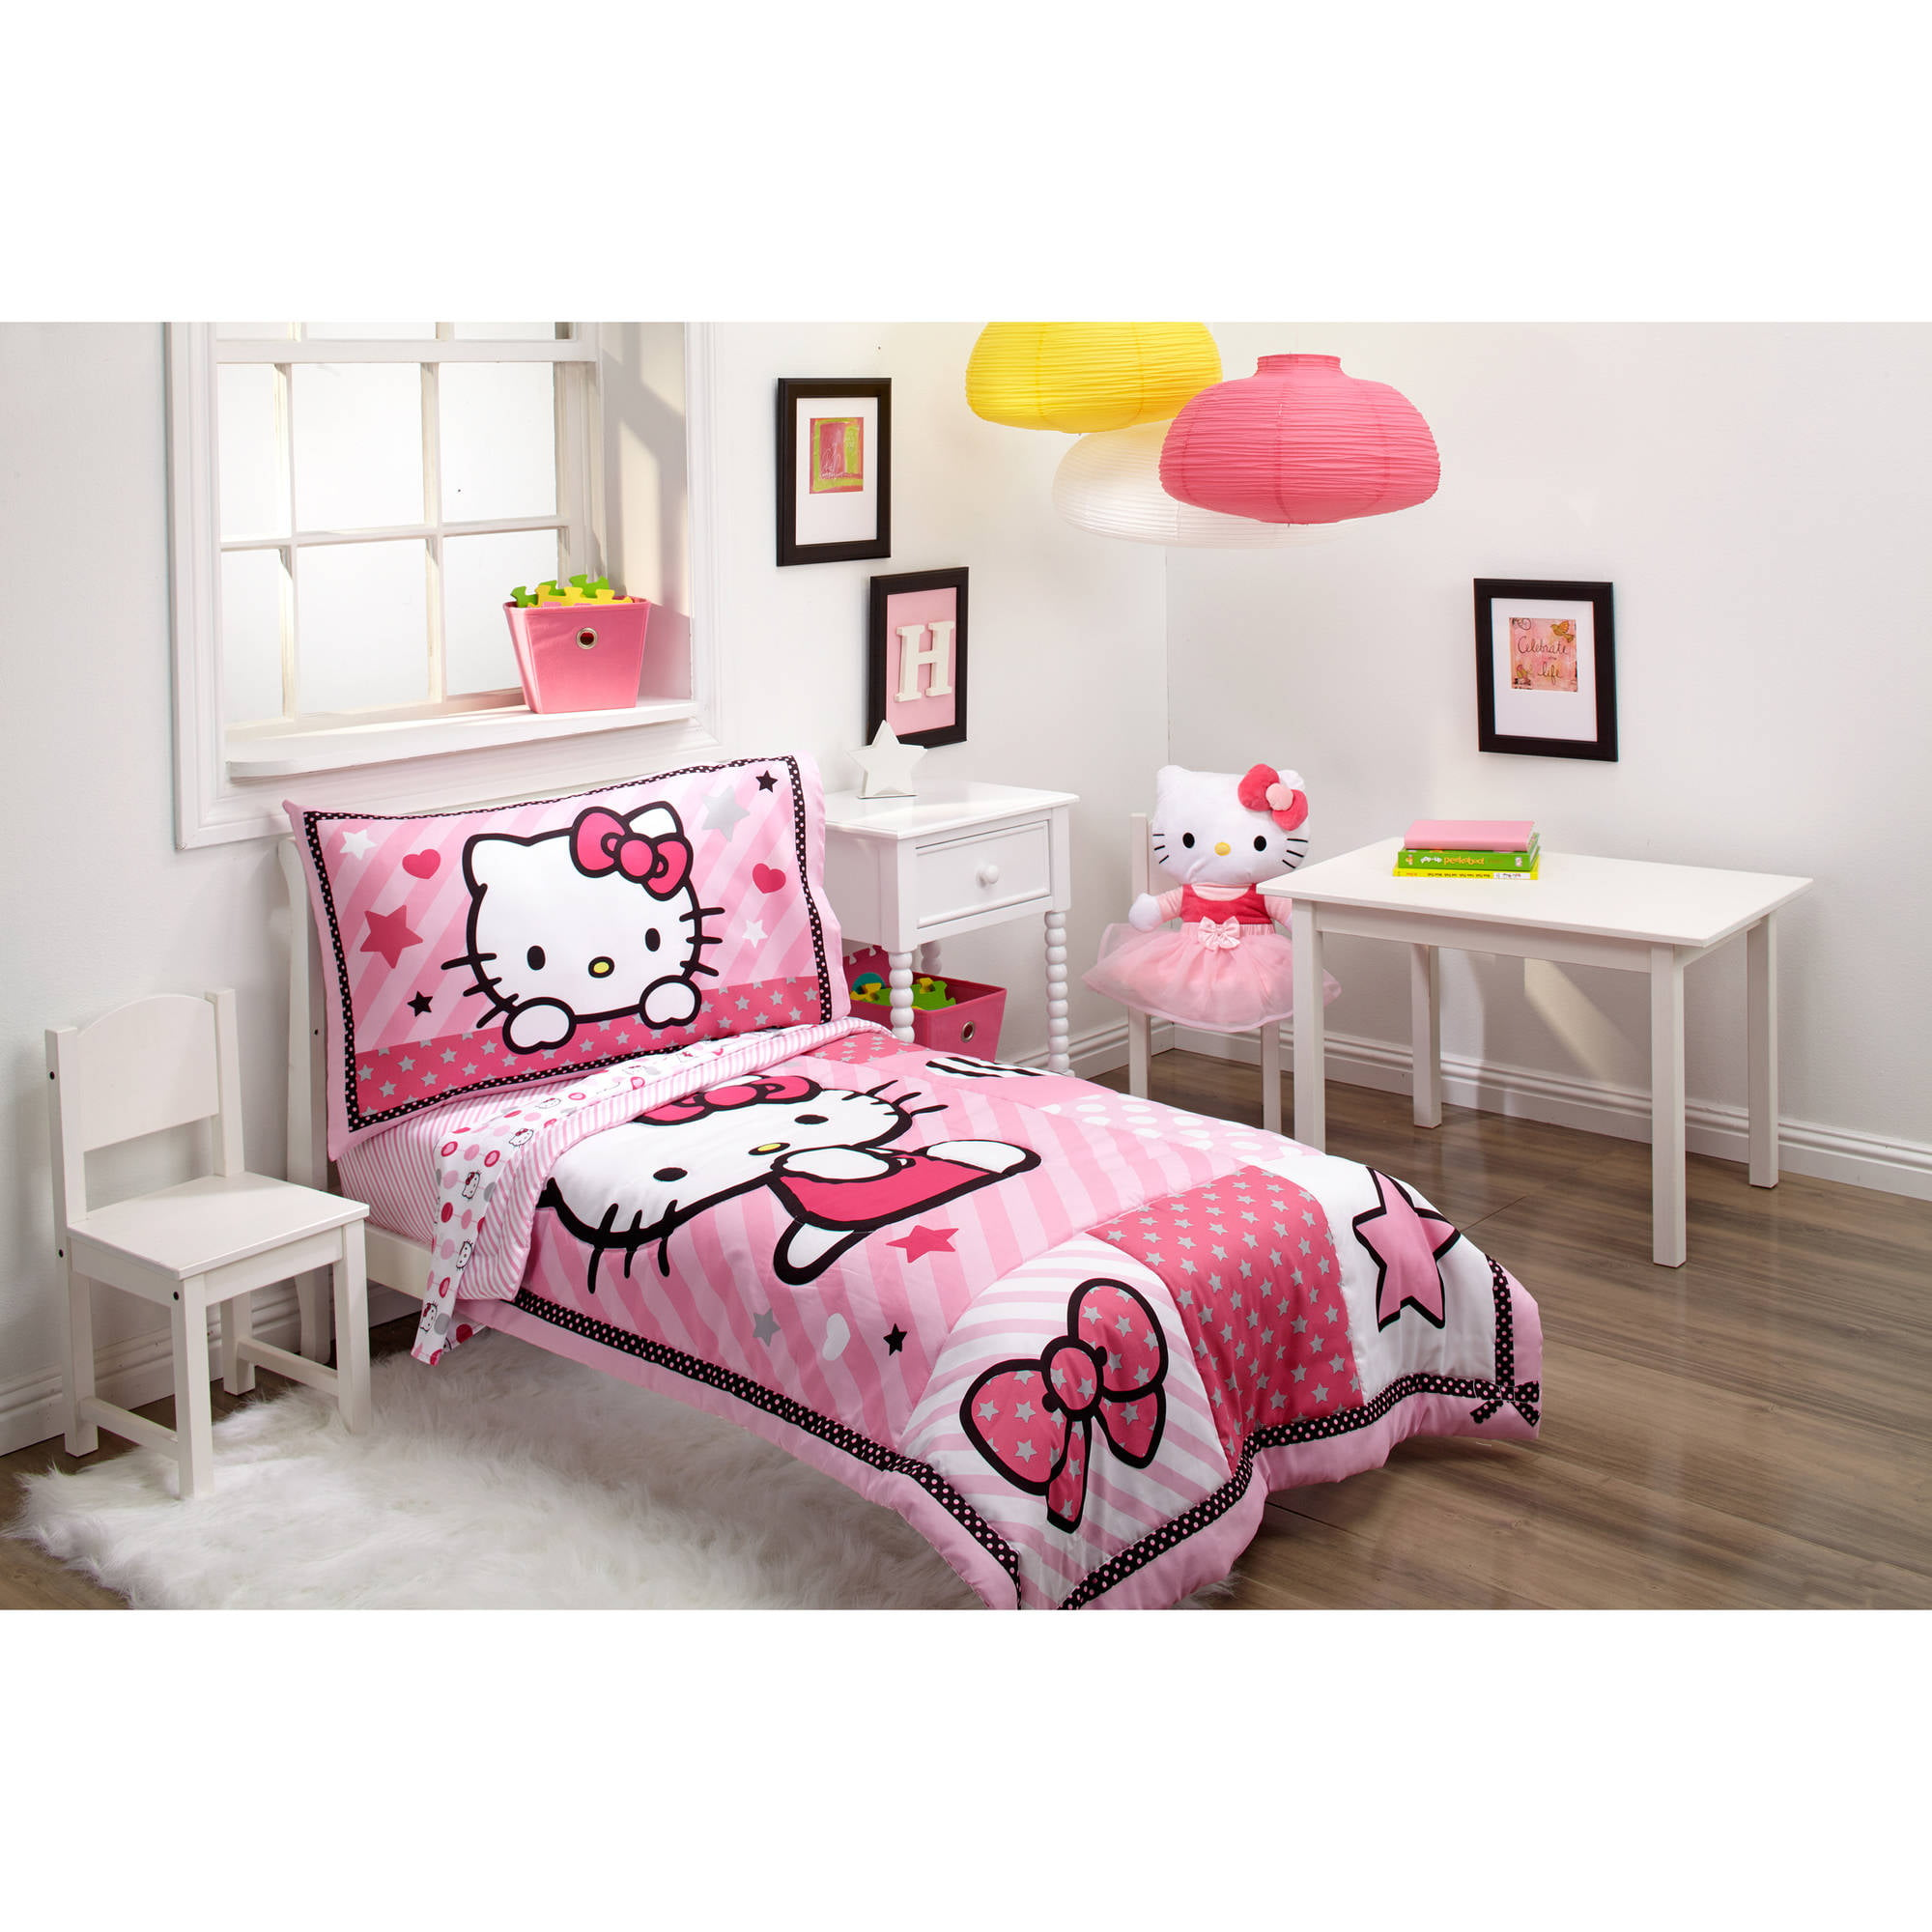 Merveilleux Hello Kitty Sweetheart 3 Piece Toddler Bedding Set With BONUS Matching  Pillow Case   Walmart.com